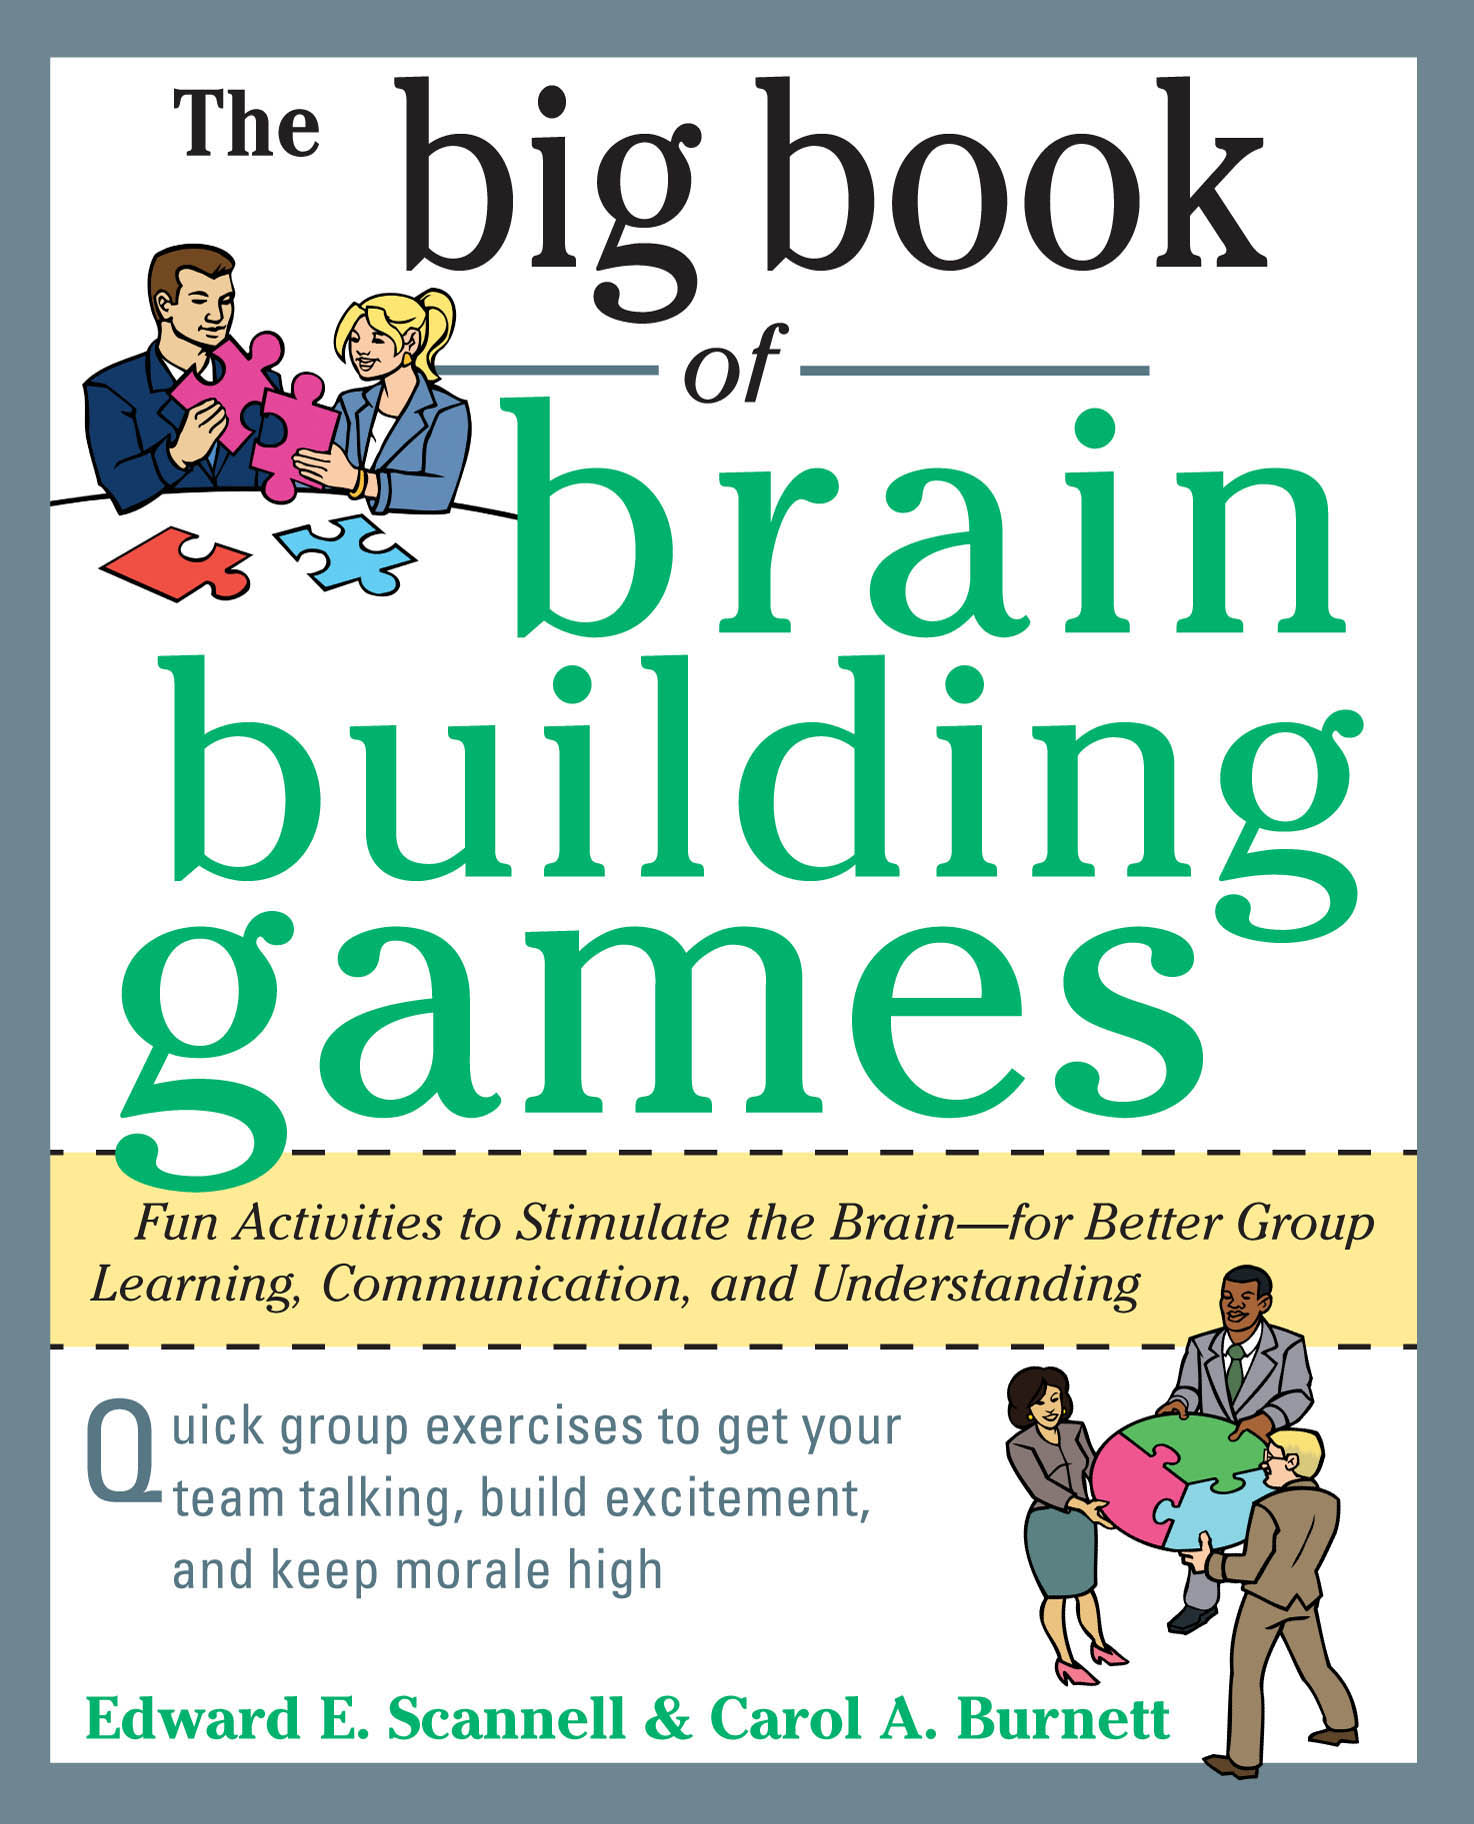 Download Ebook The Big Book of Brain-Building Games: Fun Activities to Stimulate the Brain for Better Learning, Communication and Teamwork by Edward E. Scannell Pdf